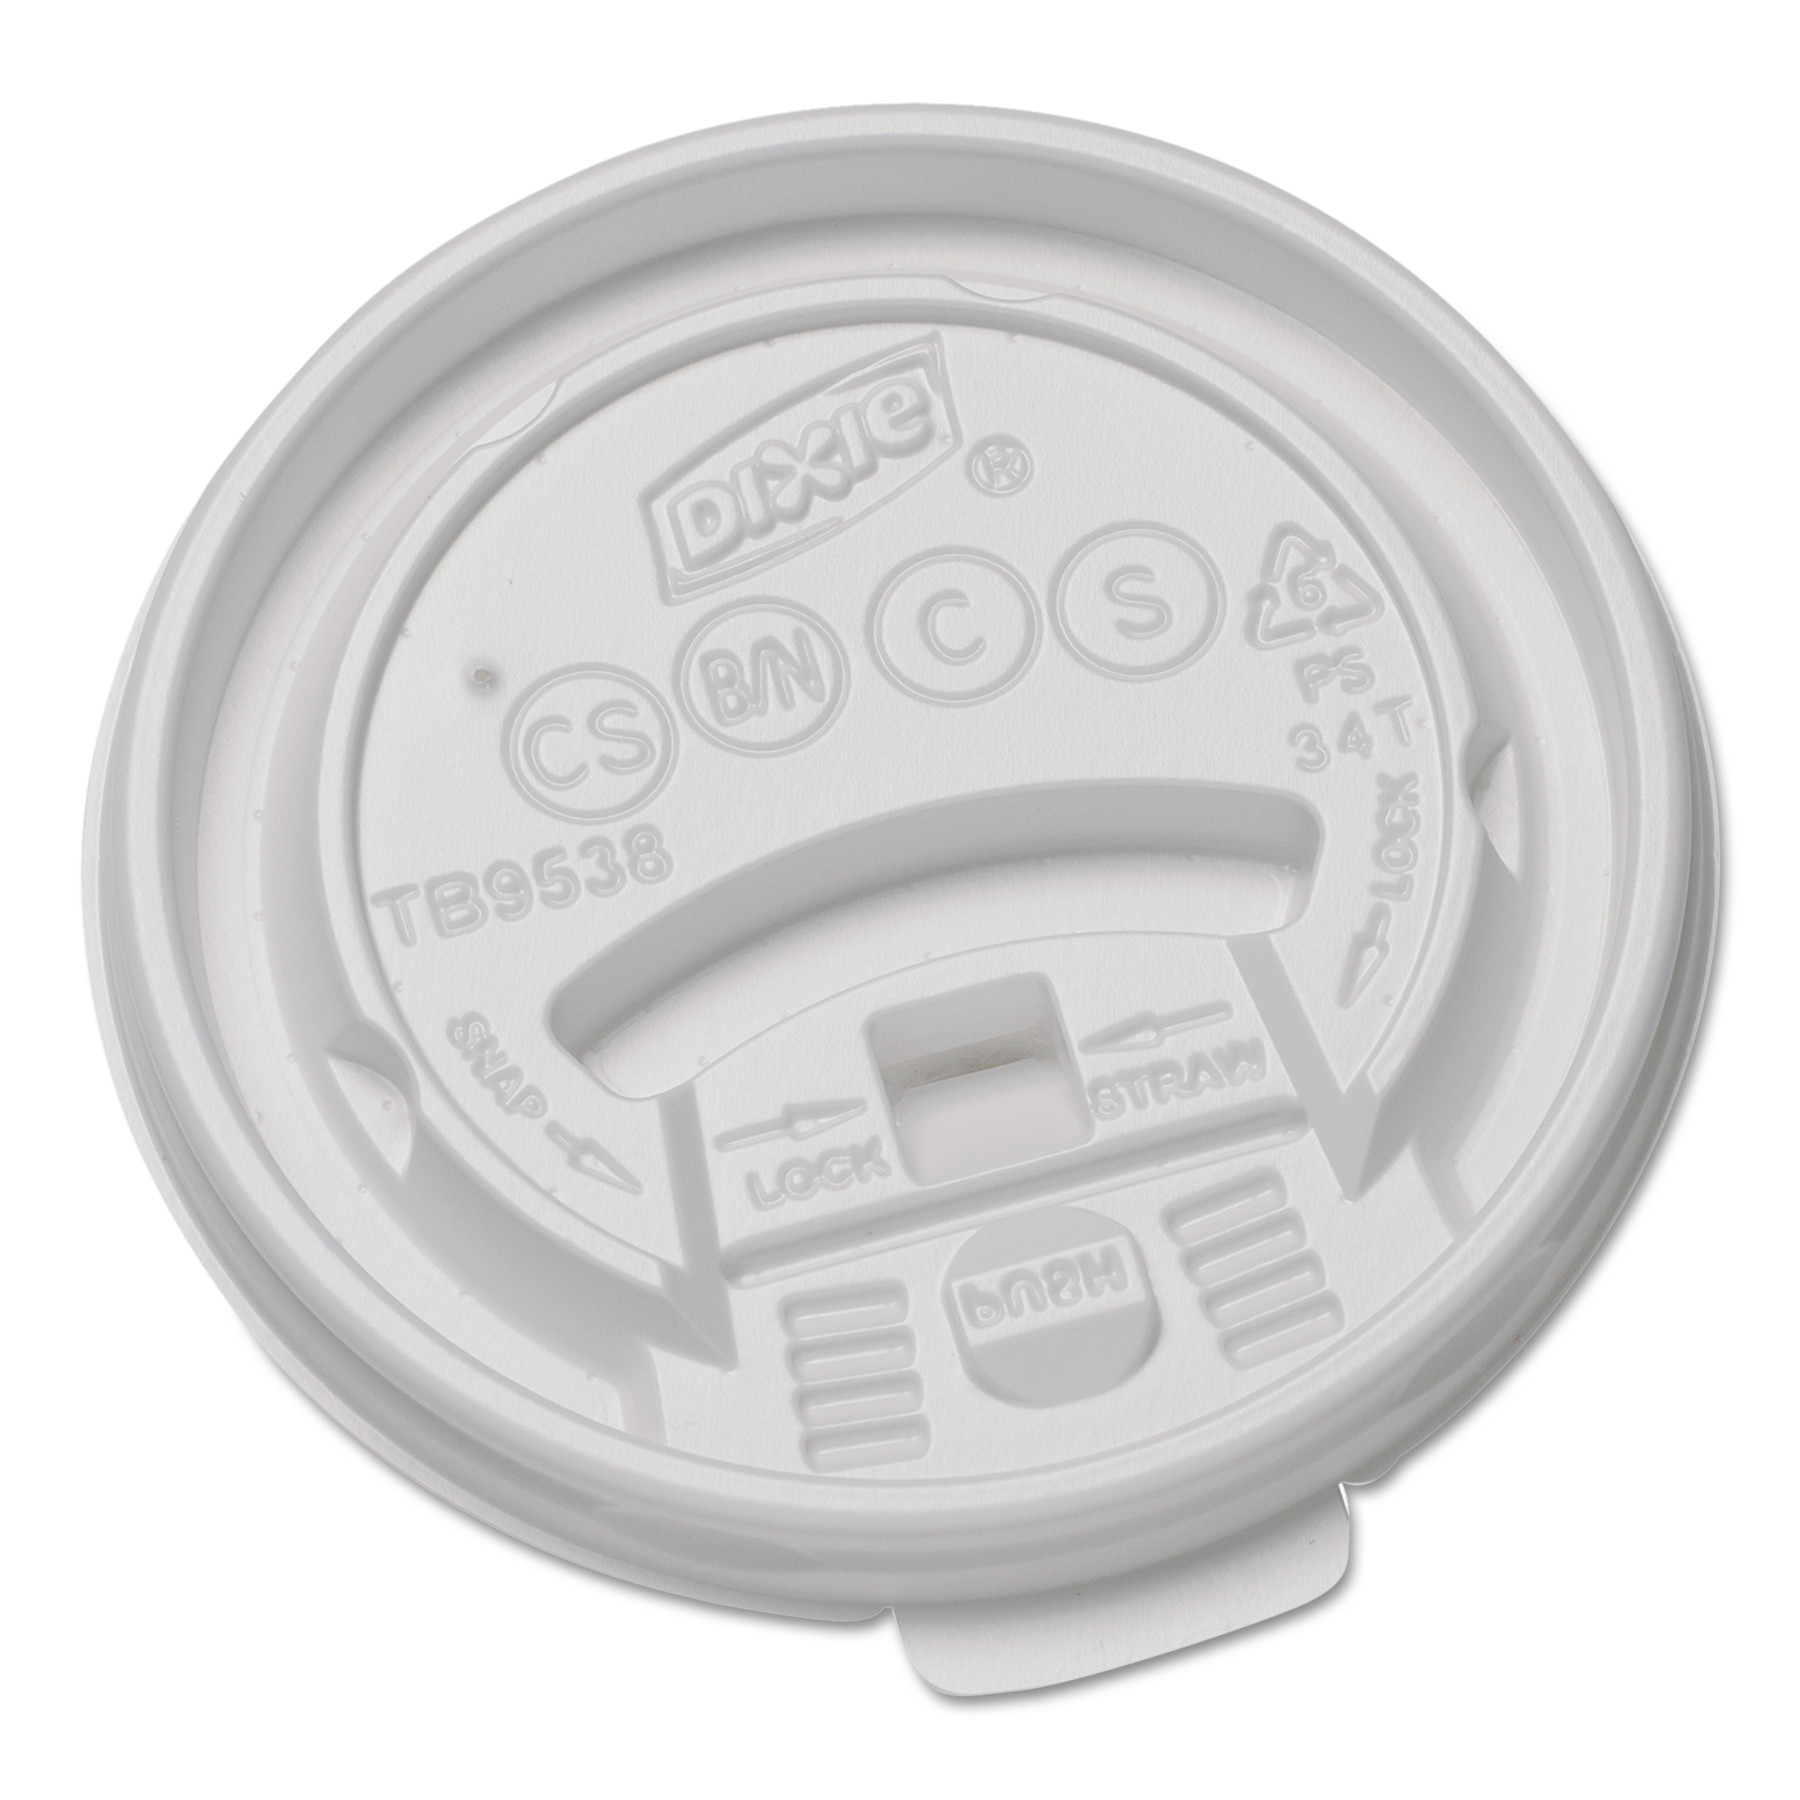 Dixie Plastic Lids for 8 oz Hot Drink Cups, 1000 count -DXETB9538X